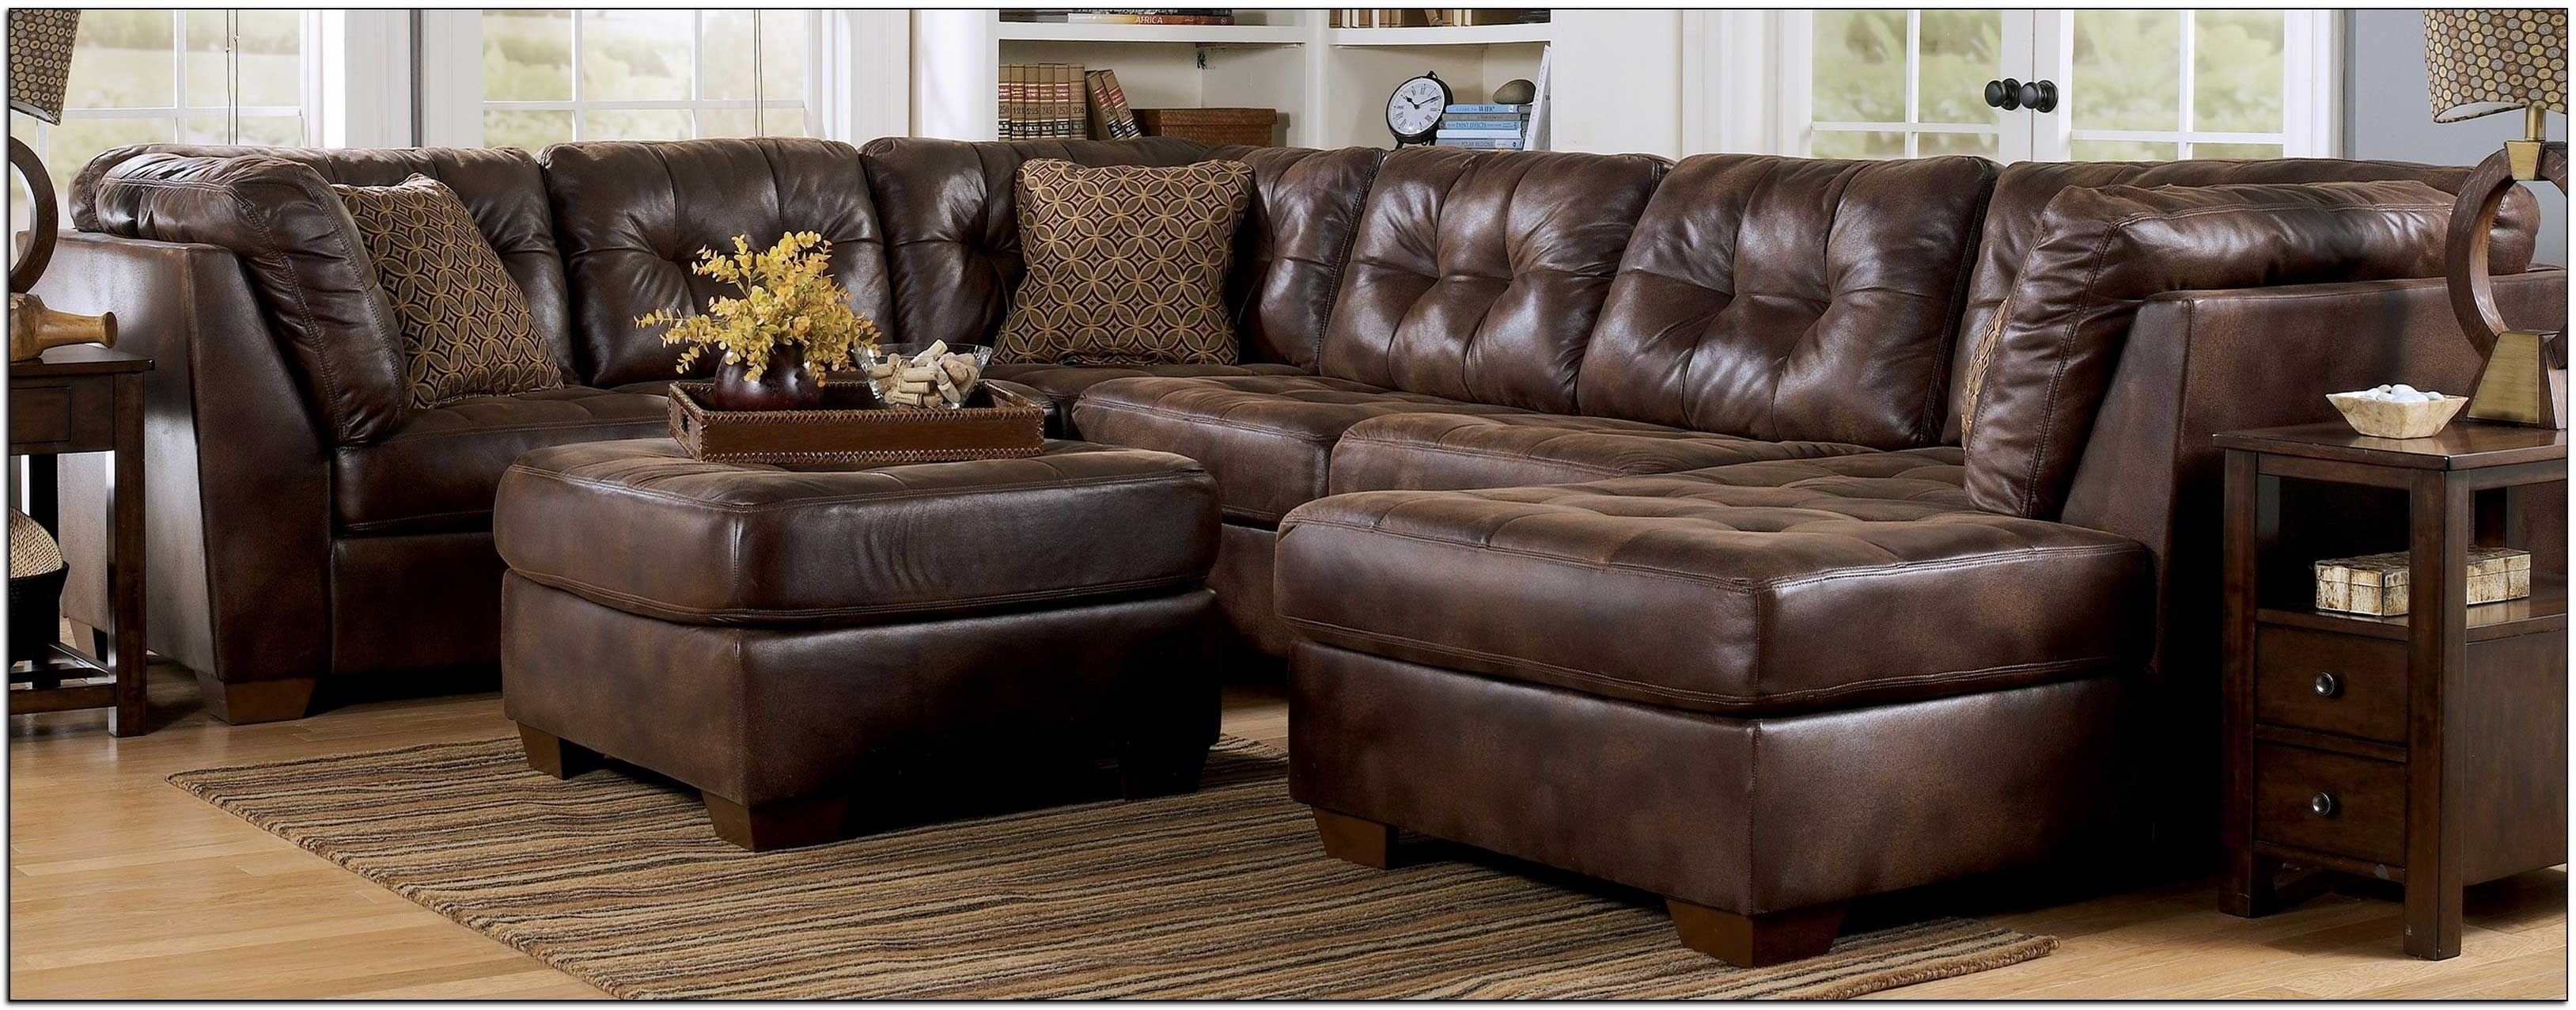 Brilliant Sectional Sofas Cincinnati – Buildsimplehome With Regard To Best And Newest Cincinnati Sectional Sofas (View 4 of 20)